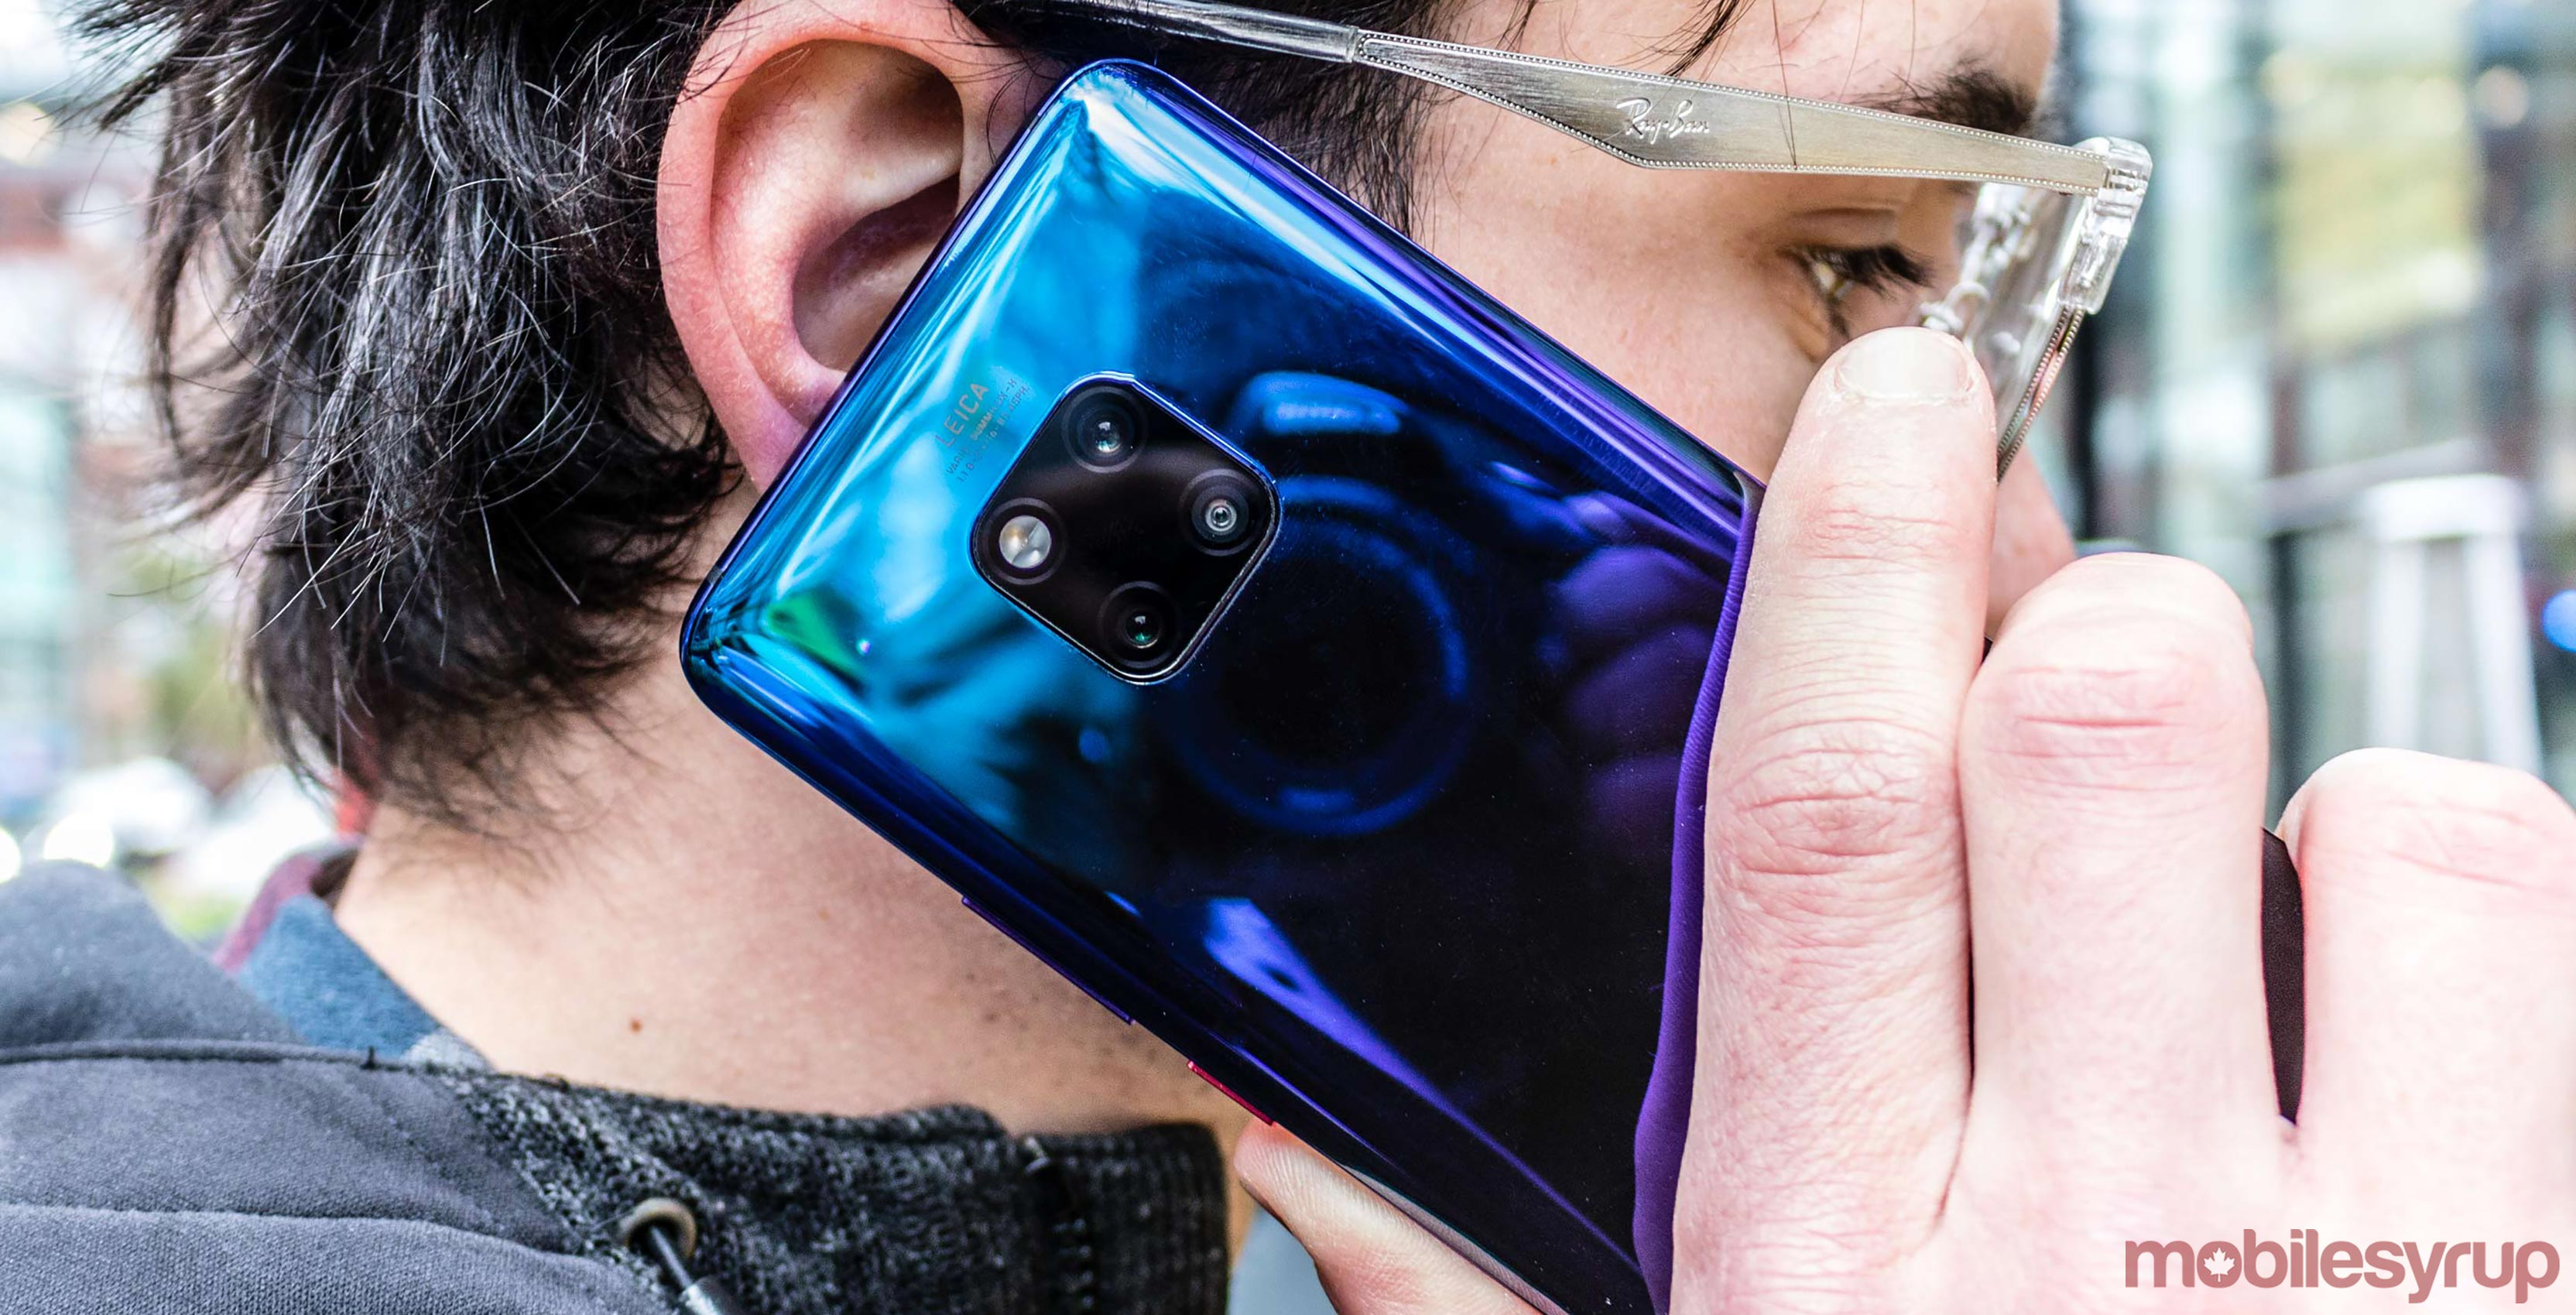 You can finally buy Huawei's Mate 20 Pro from Freedom Mobile